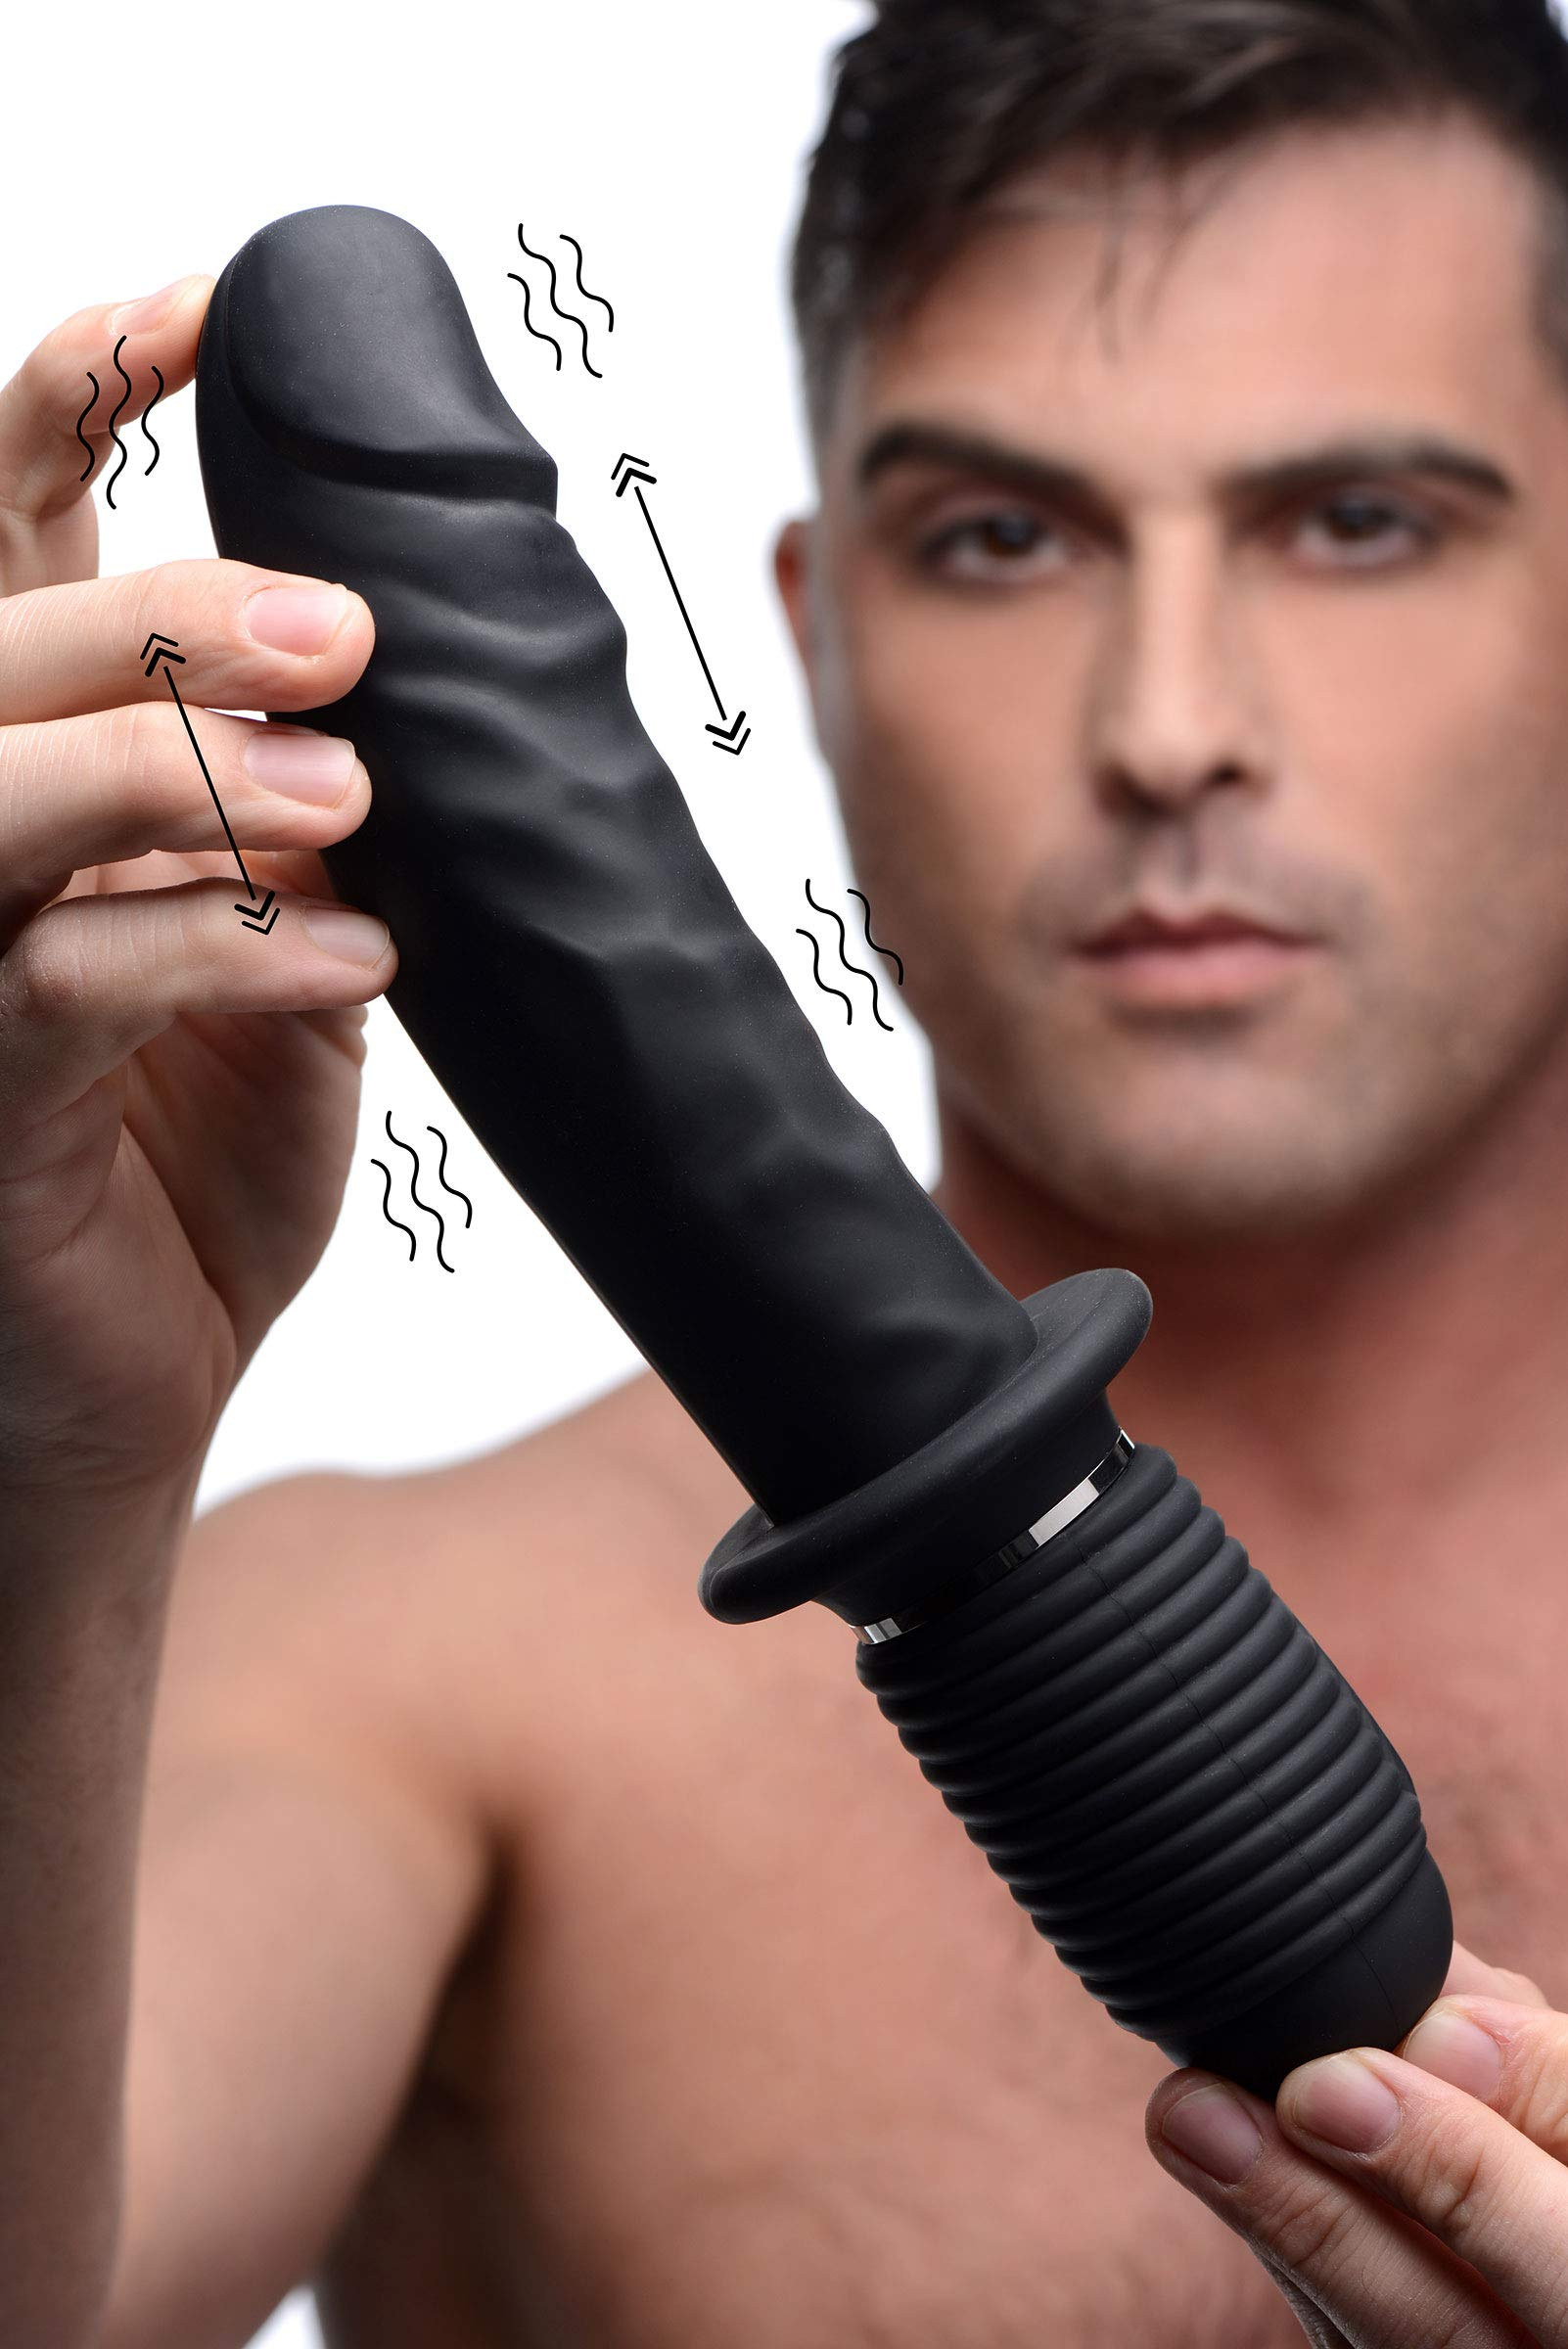 Master Series Power Pounder Vibrating and Thrusting Silicone Dildo by Master Series